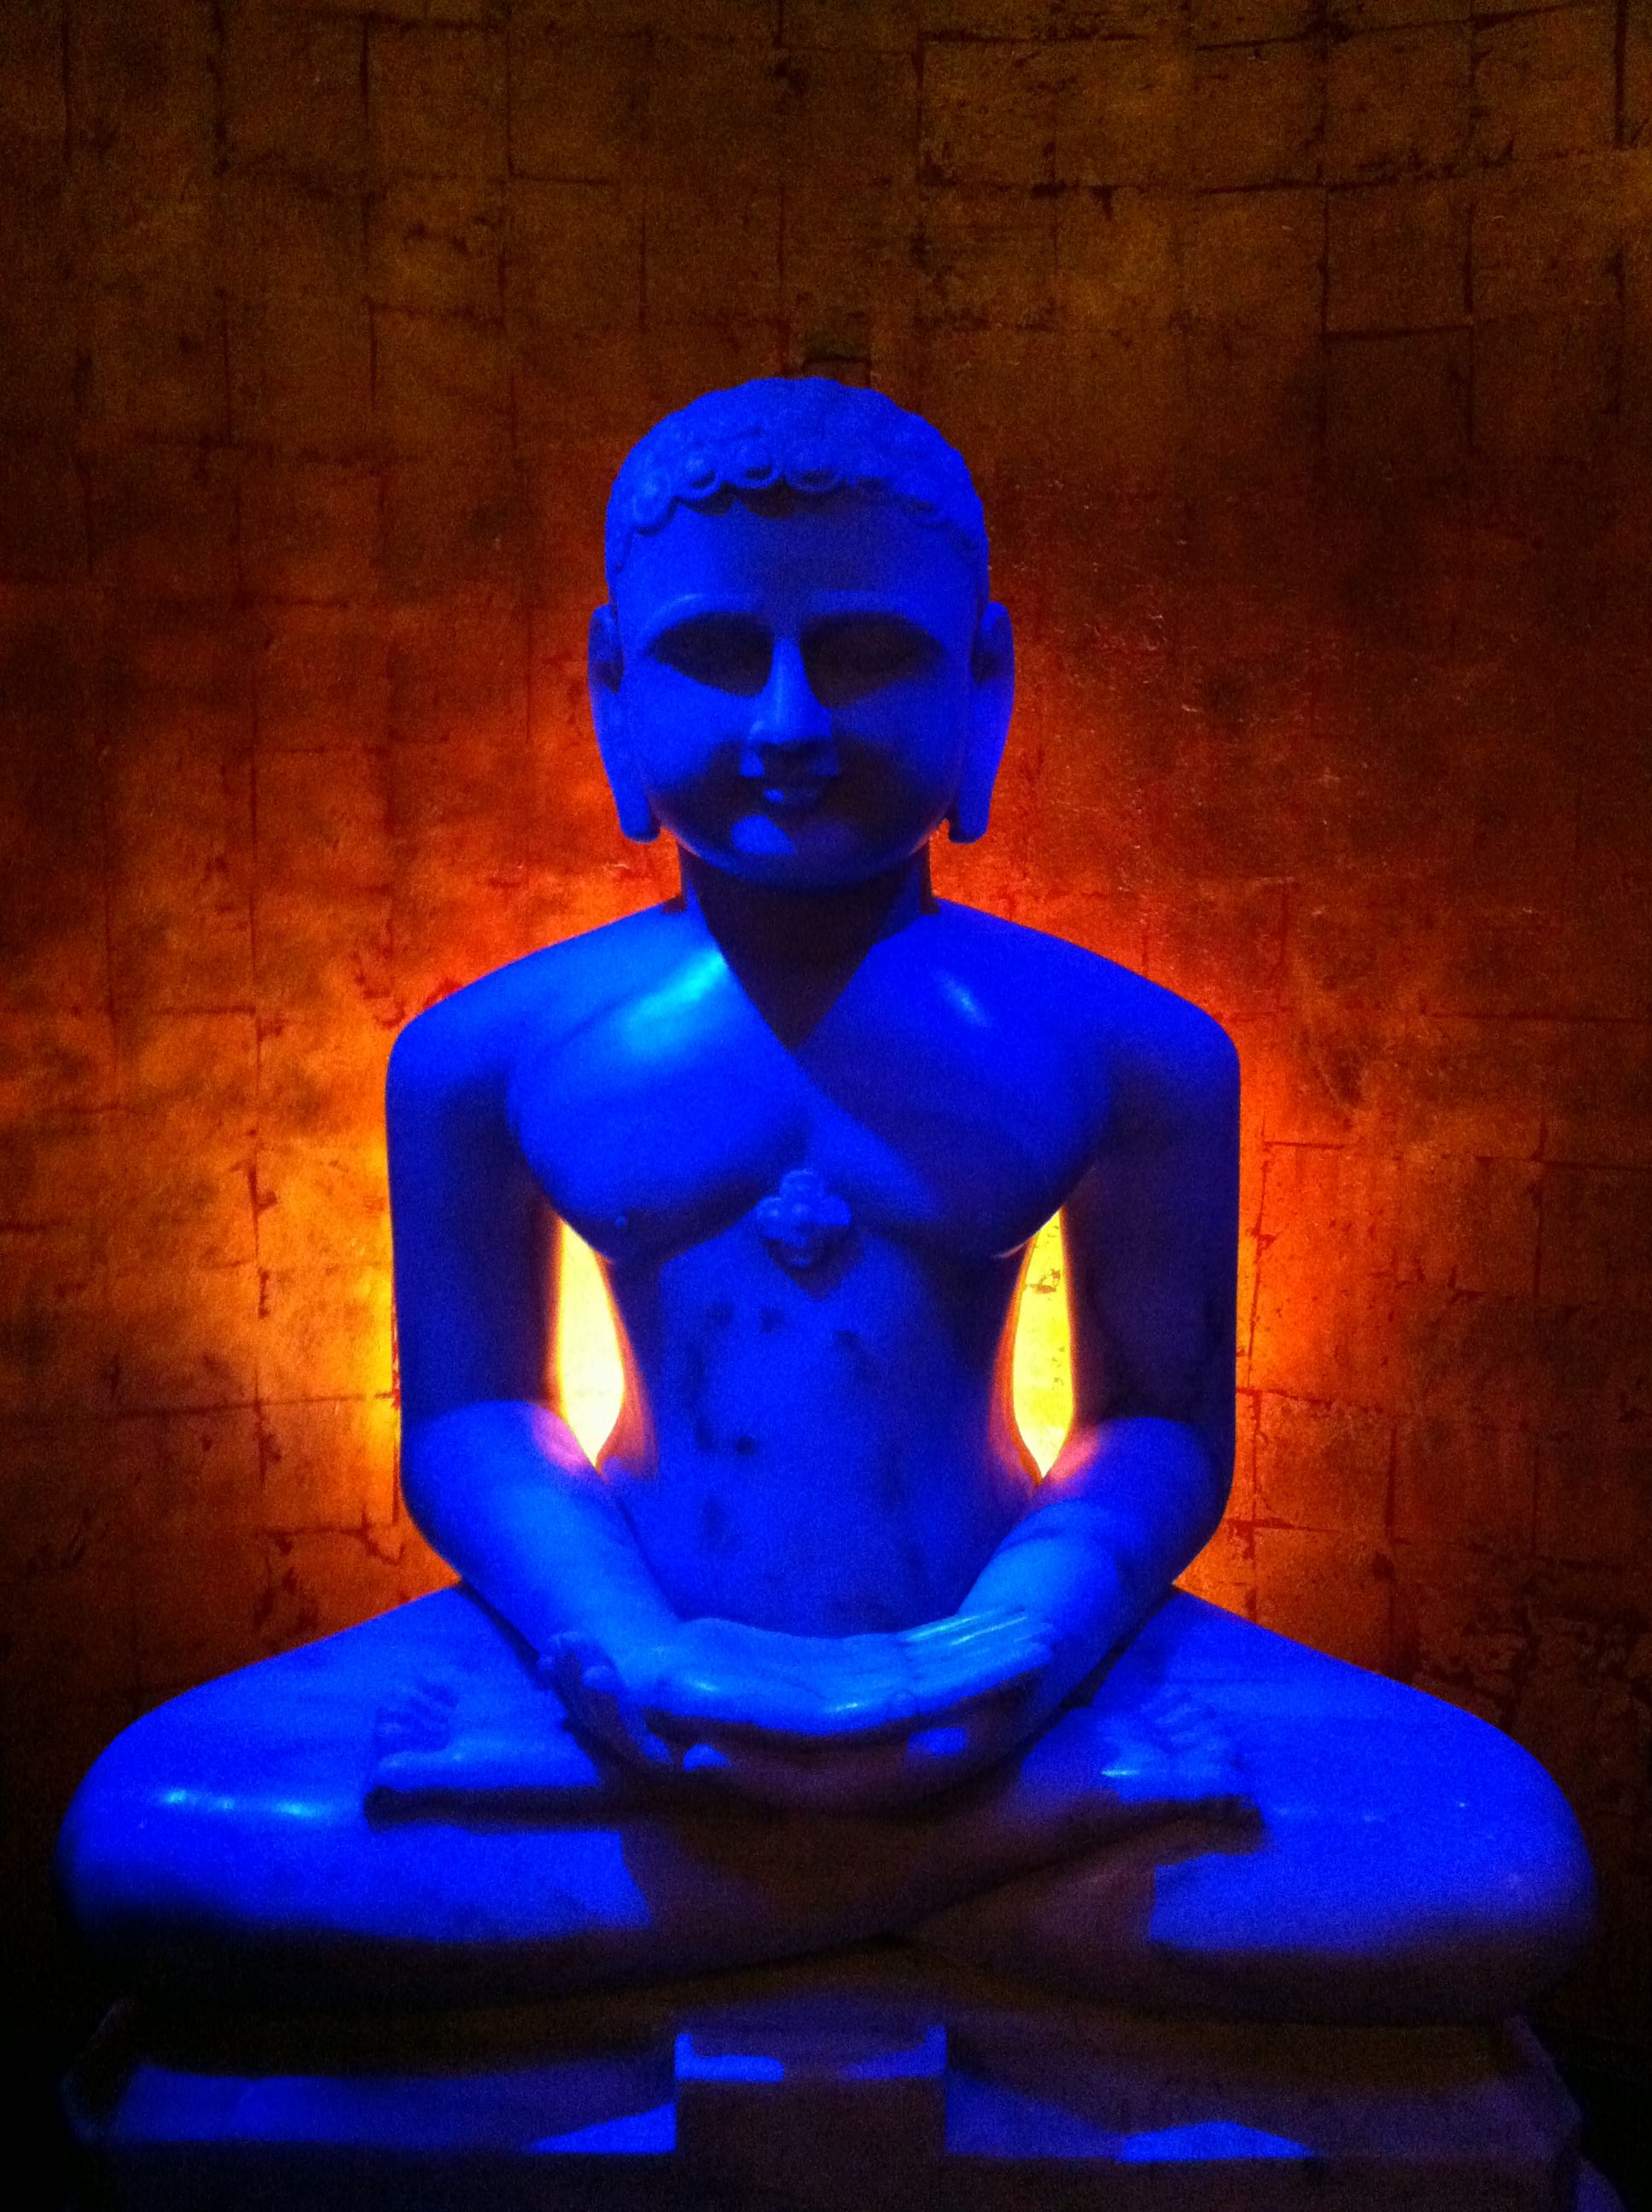 Mandalay Bay Two Bedroom Suite A Buddha Statue At The Entrance To The Foundation Room At The